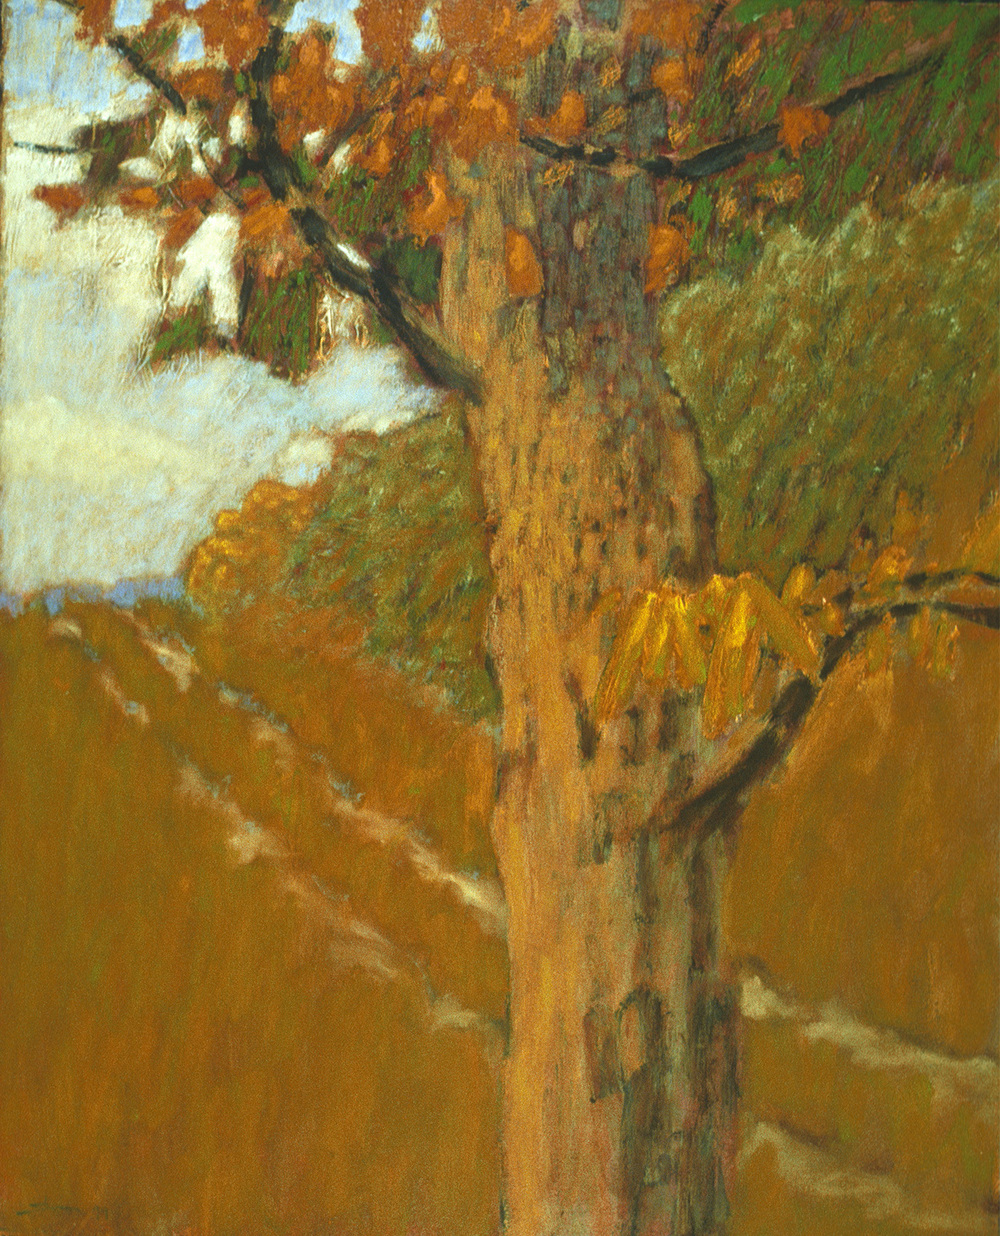 Tree With Two Track | acrylic on paper | 30 x 24"